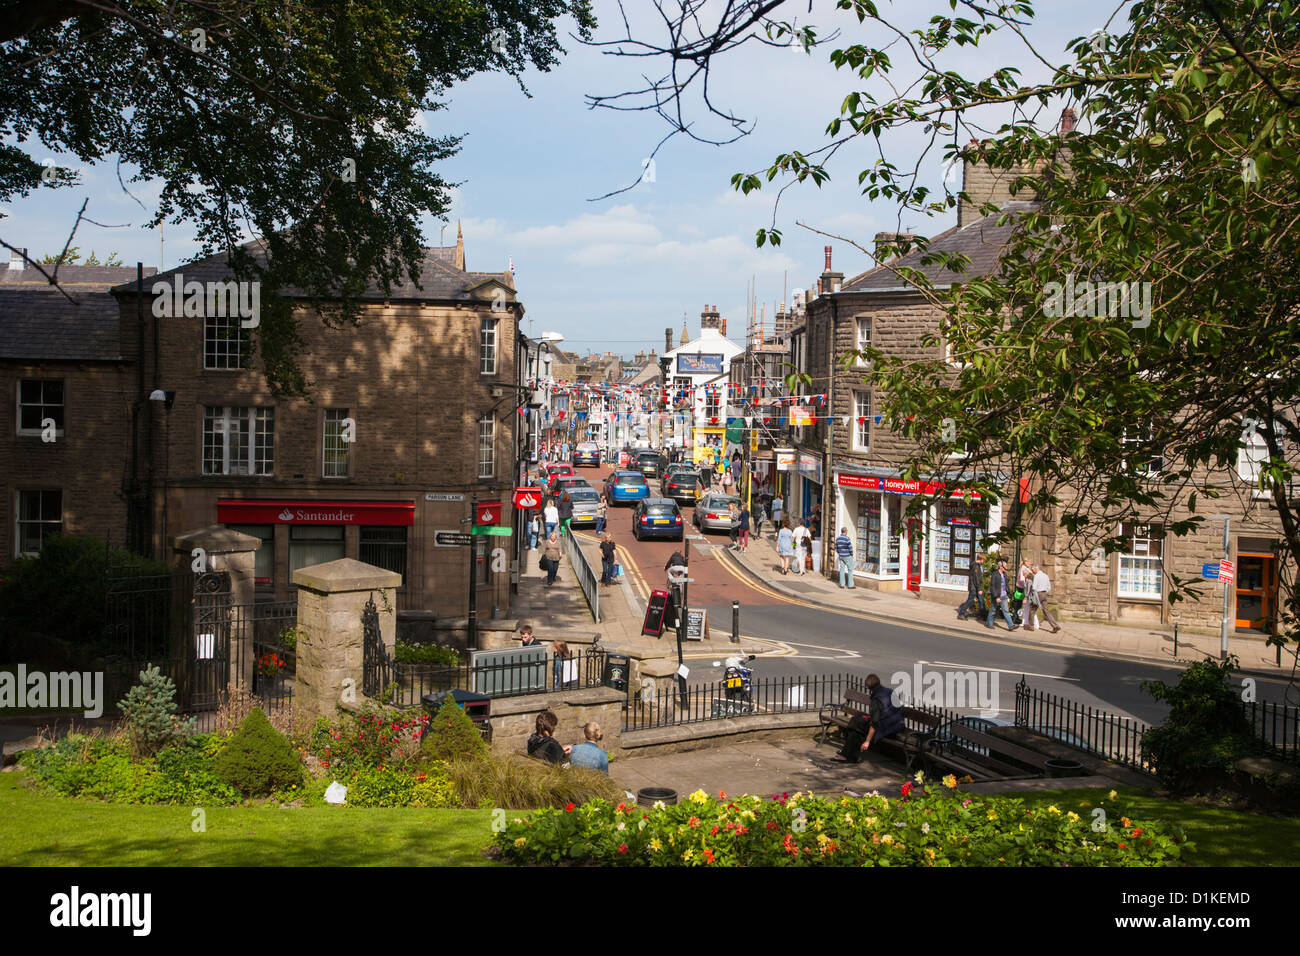 Clitheroe town center - Stock Image